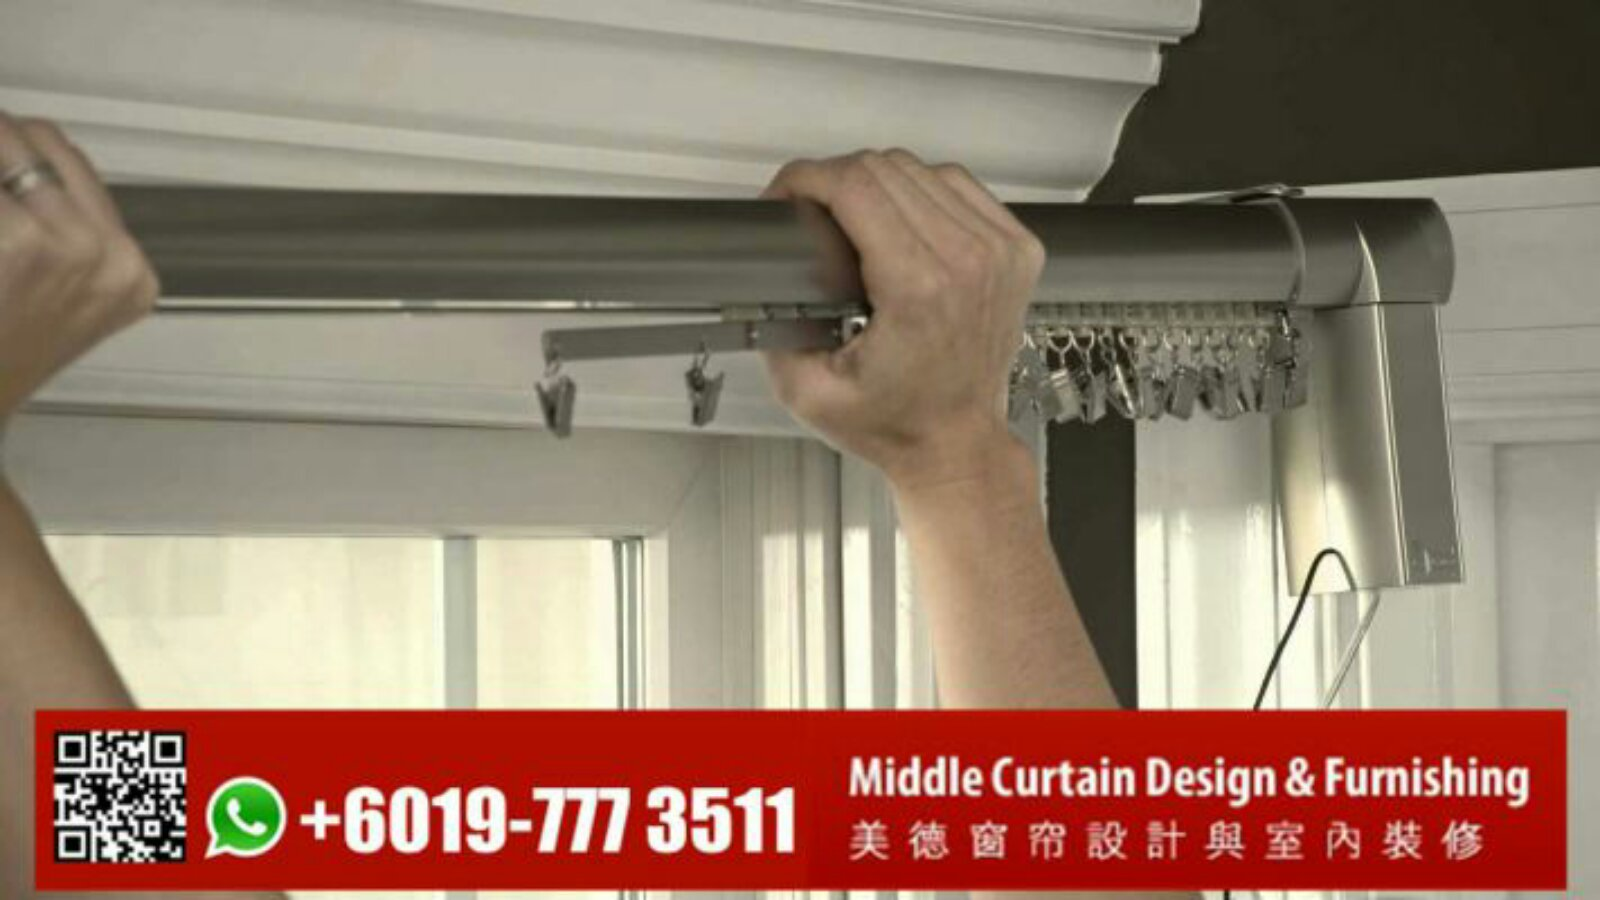 High Quality Type Motorized Curtain Rod - Johor Bahru